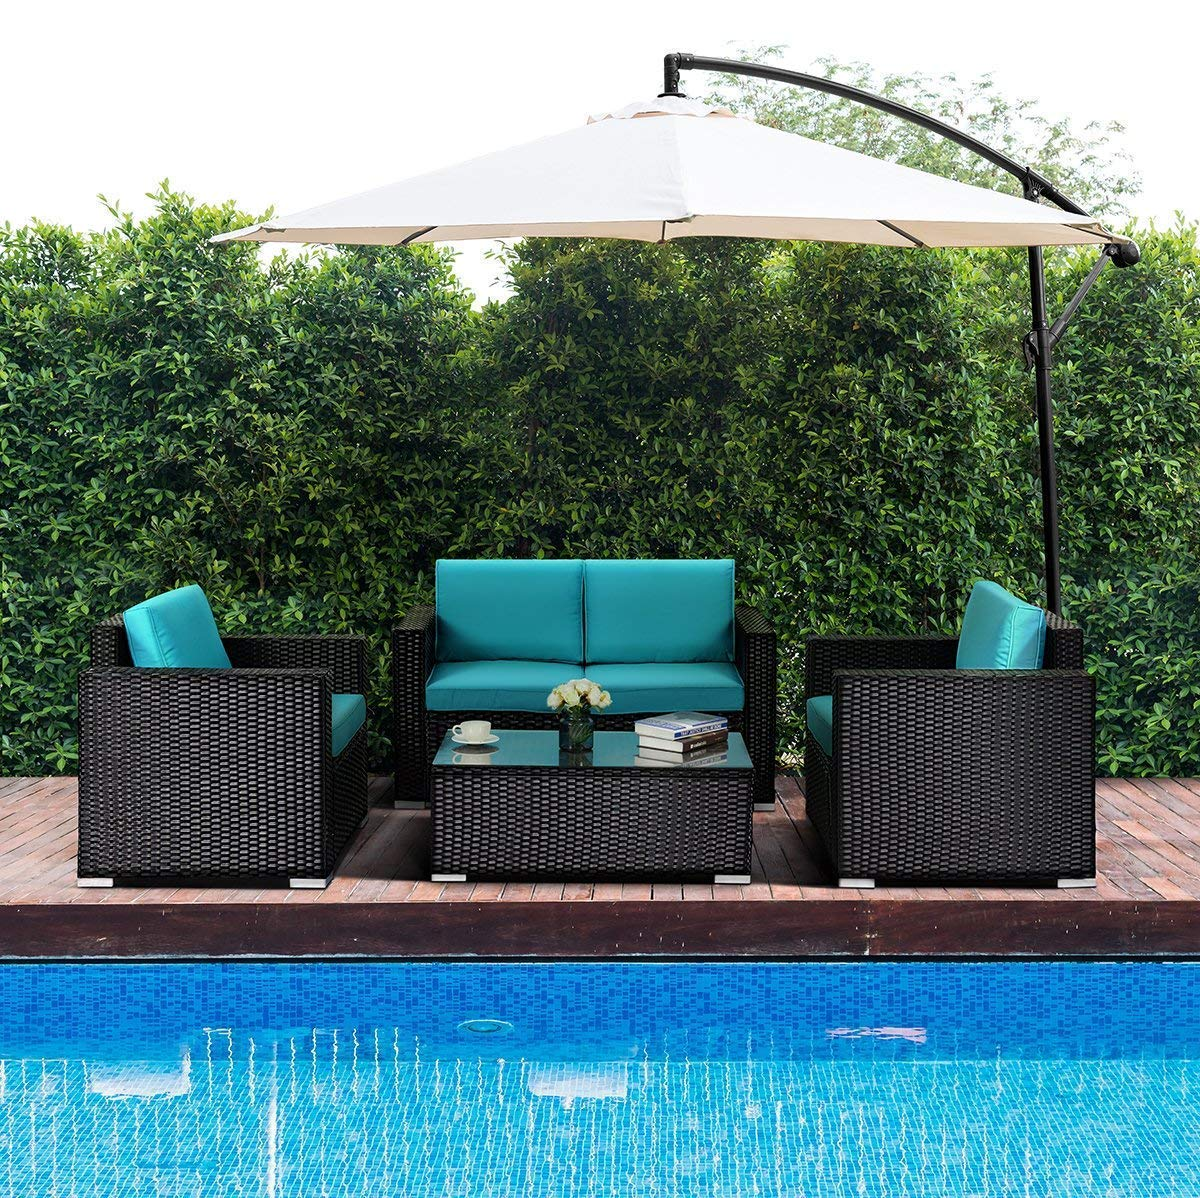 Tangkula 4PC Patio Rattan Sofa Outdoor Garden Modern PE Wicker Rattan Sofa Conversation Furniture Set with Cushion Blue